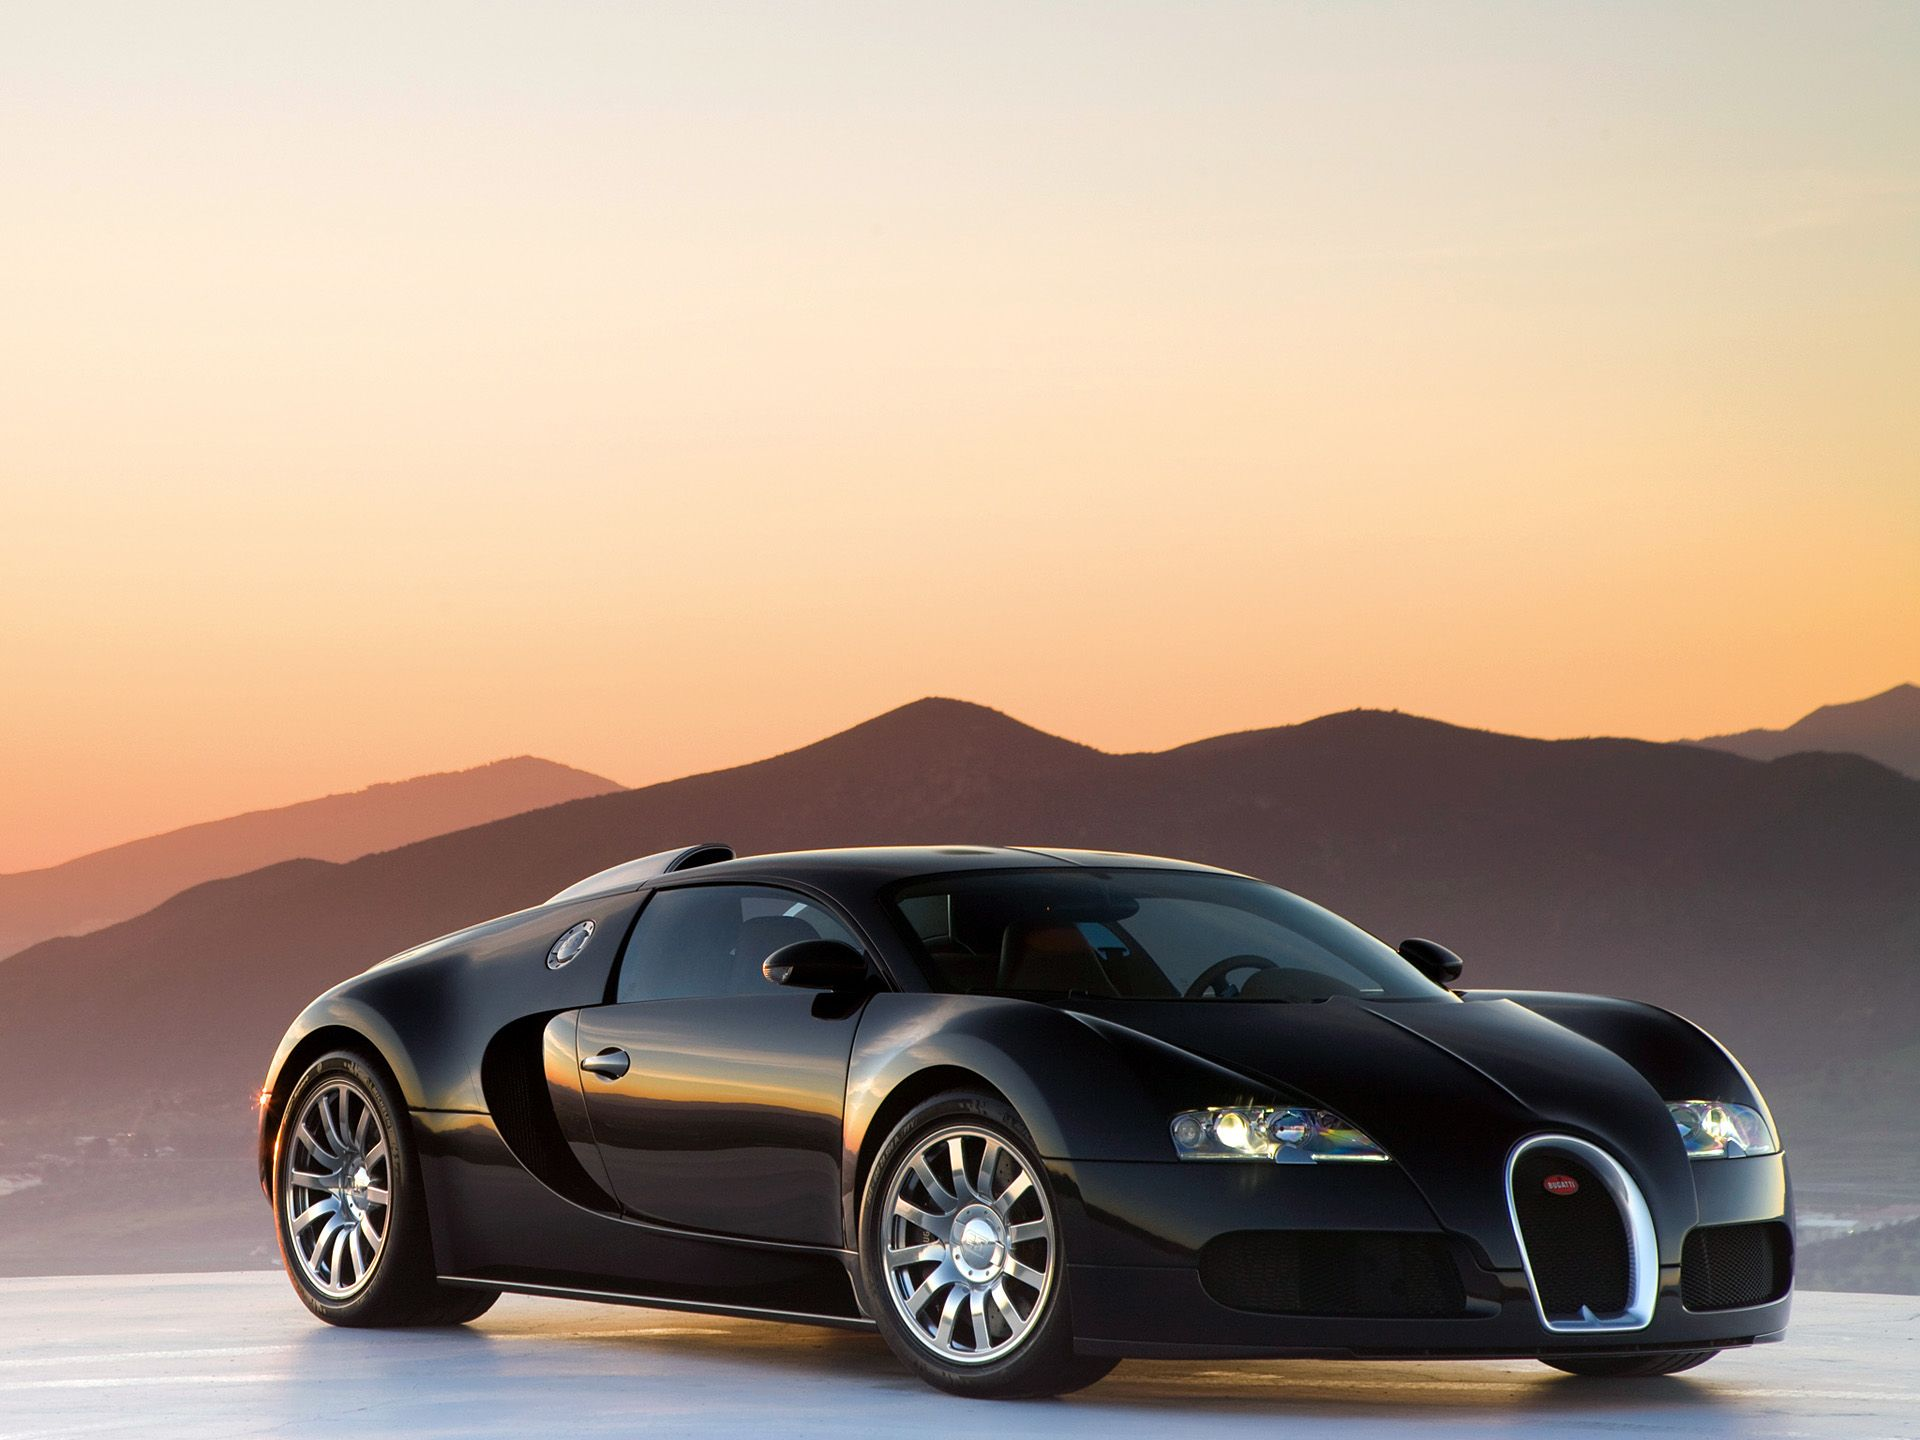 These Are The 10 Sickest Cars In Ralph Lauren's Car Collection